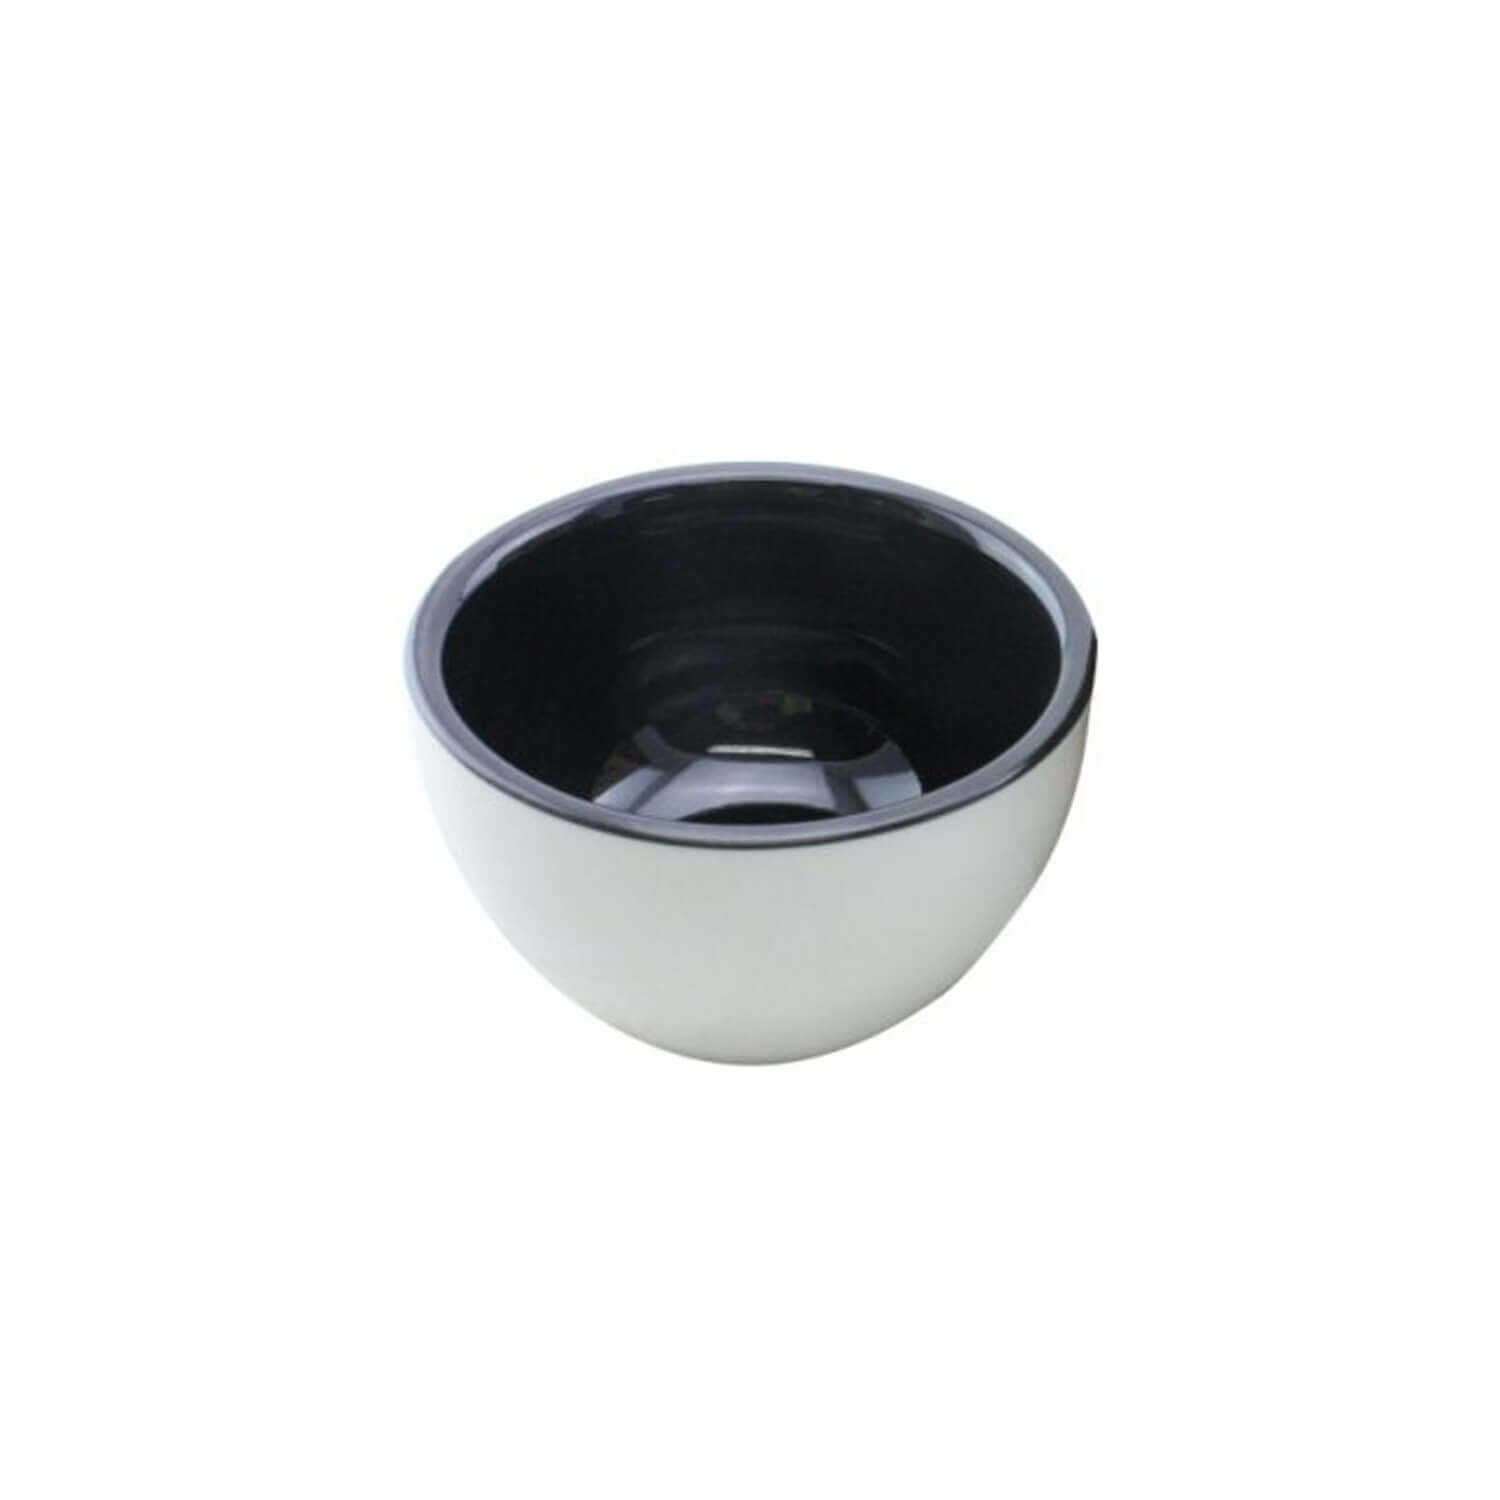 Rhinowares - Pro Cupping Bowl